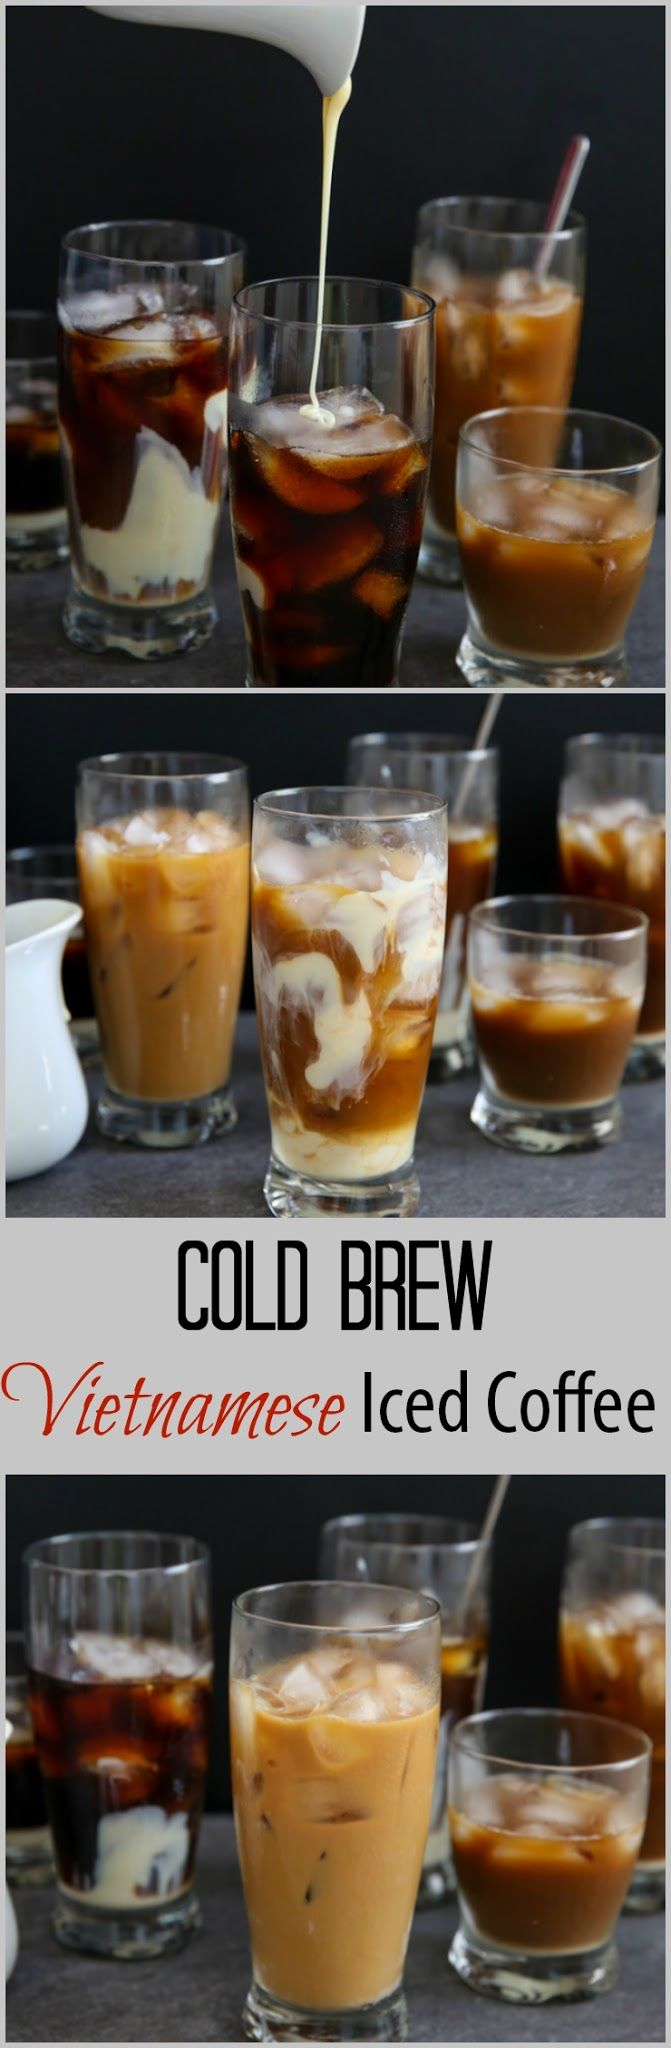 Cold Brew Vietnamese Iced Coffee